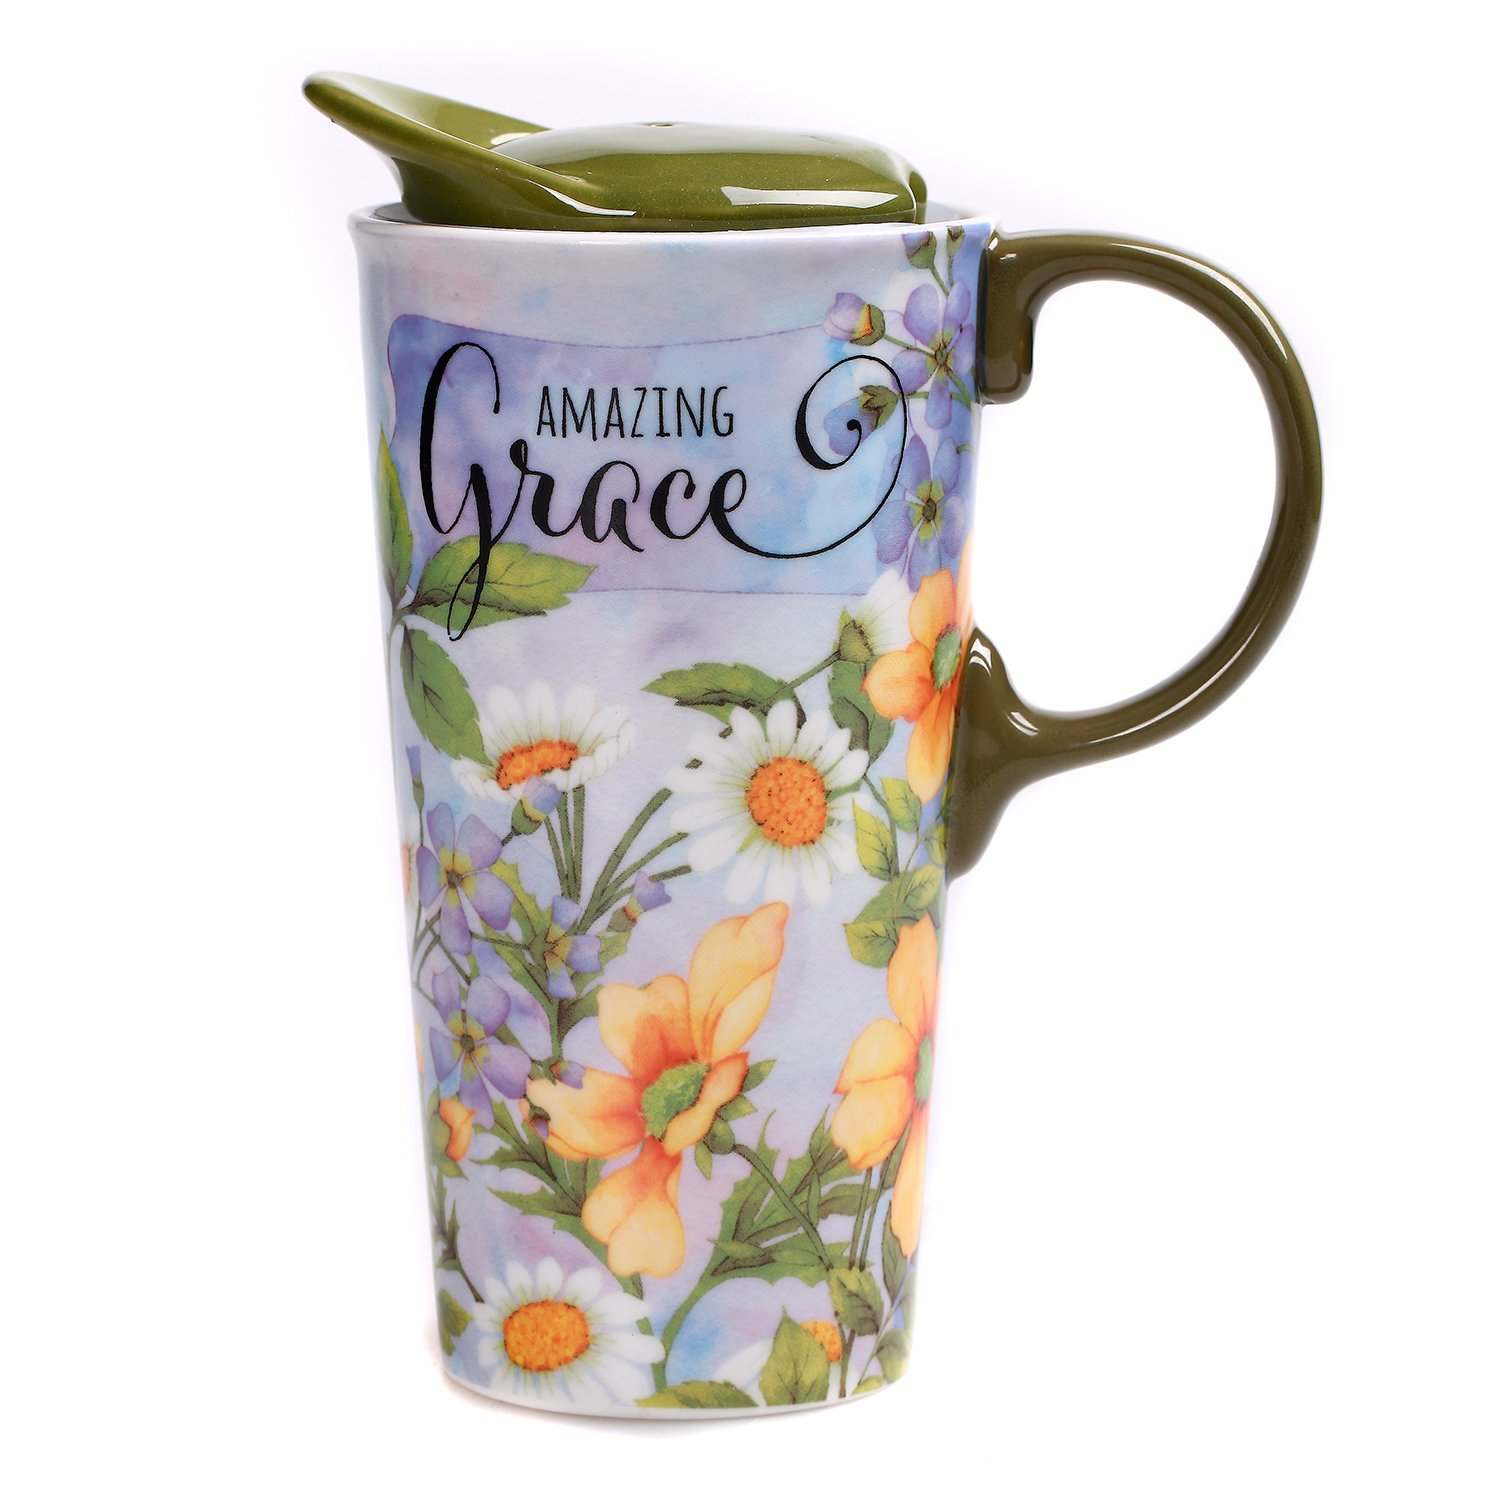 CEDAR HOME Travel Coffee Ceramic Mug Porcelain Latte Tea Cup With Lid in Gift Box 17oz. Amazing Grace